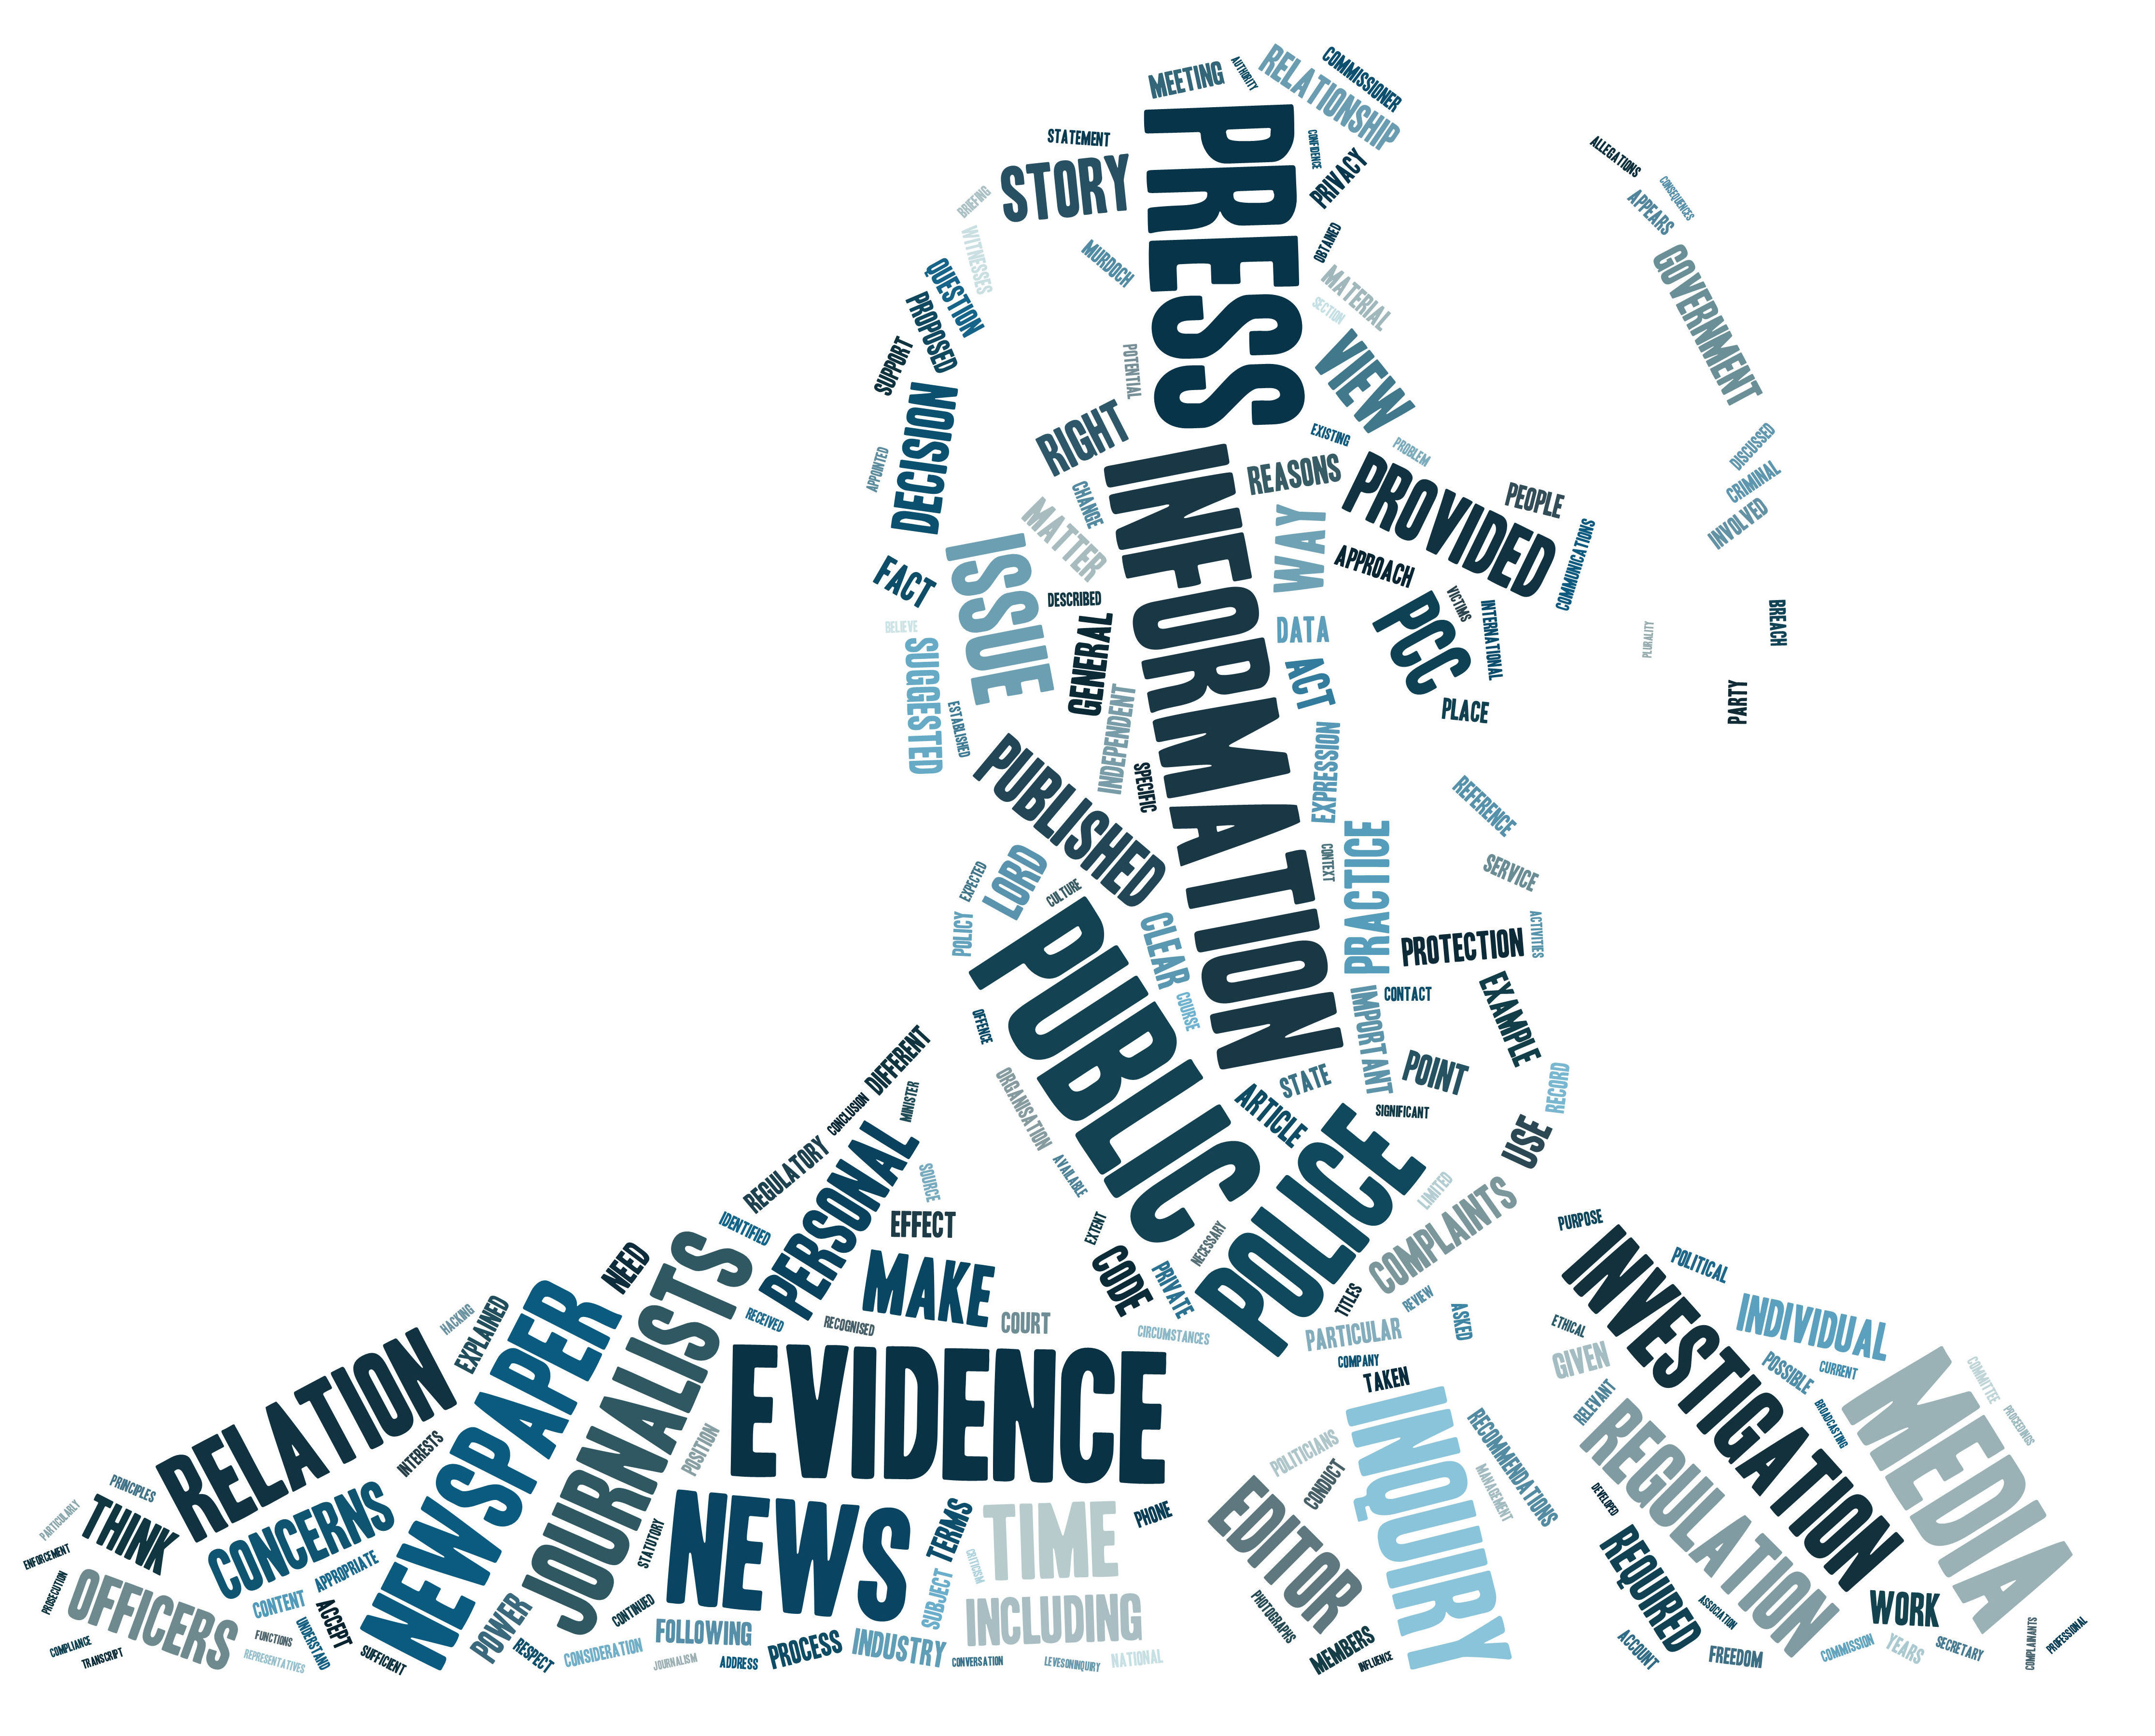 A Leveson Word Cloud